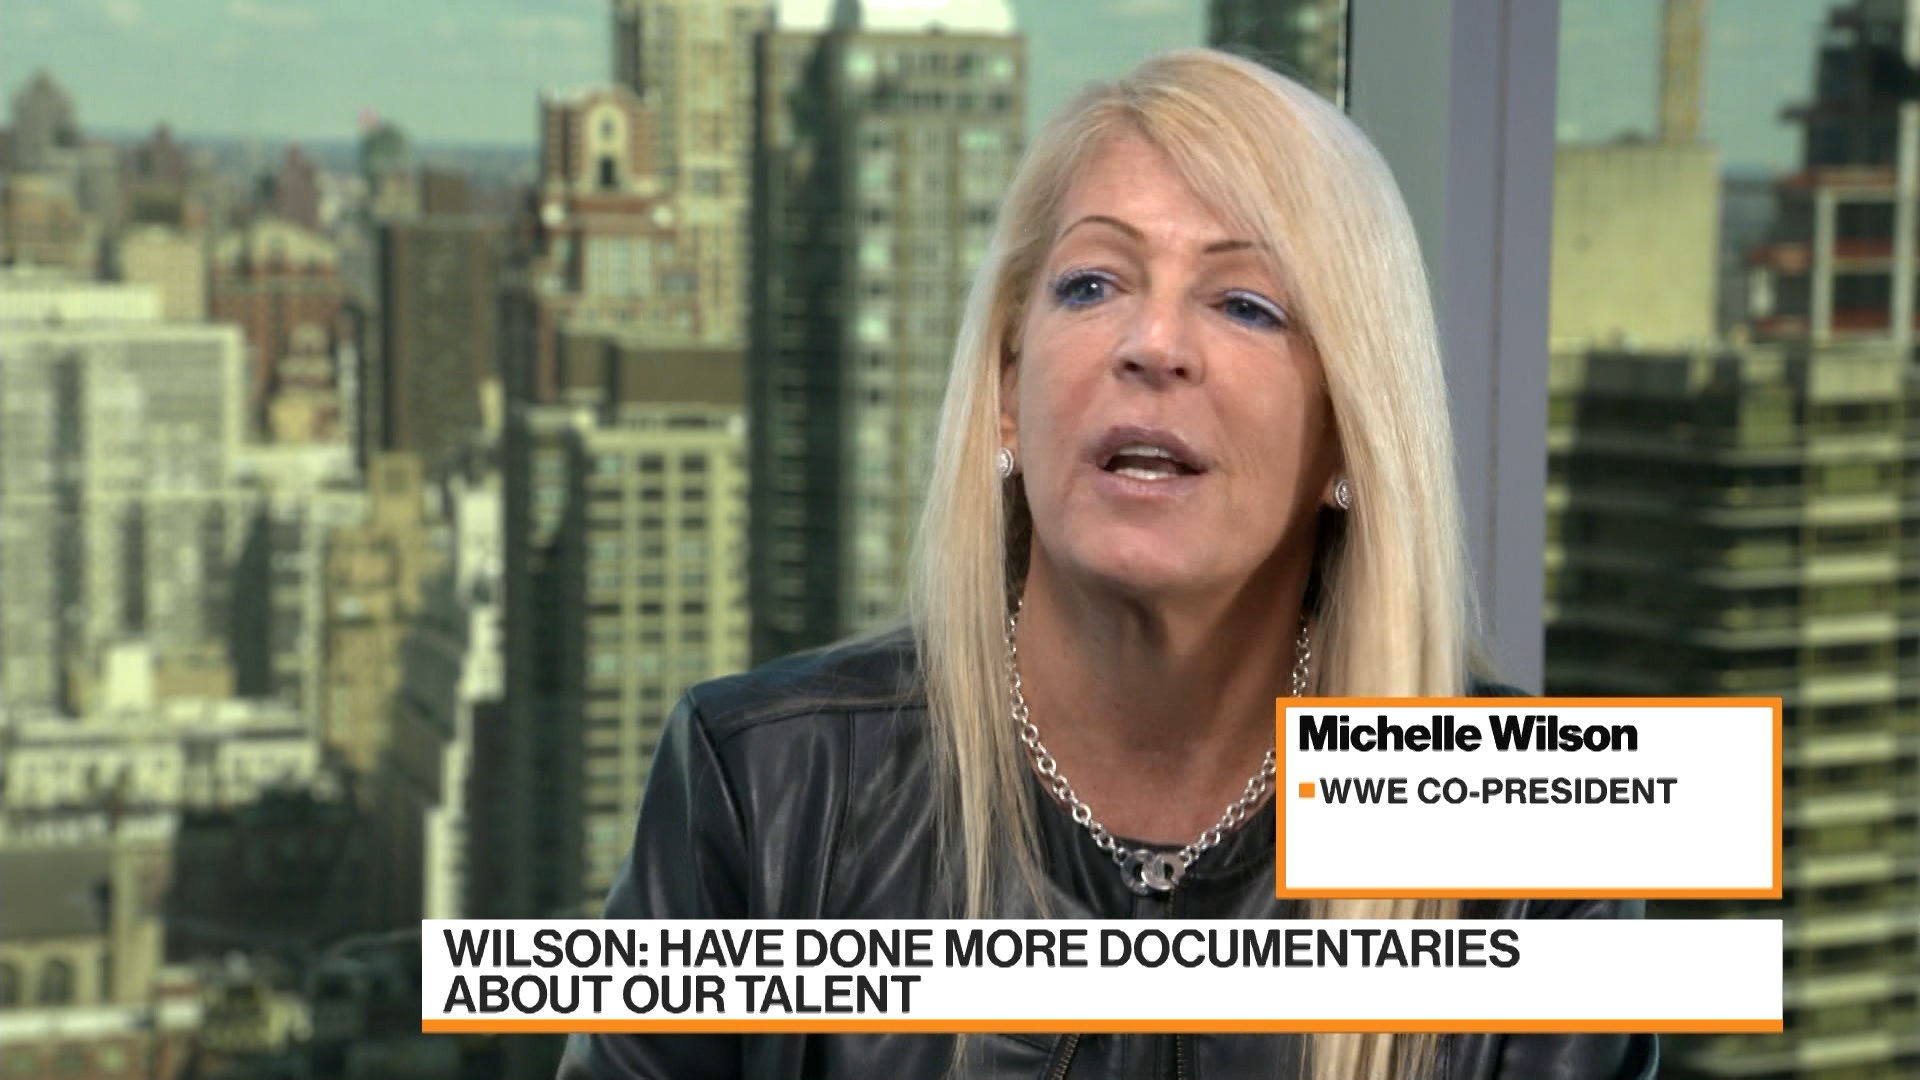 WWE Co-President on Video Streaming, Content Strategy, Live Events